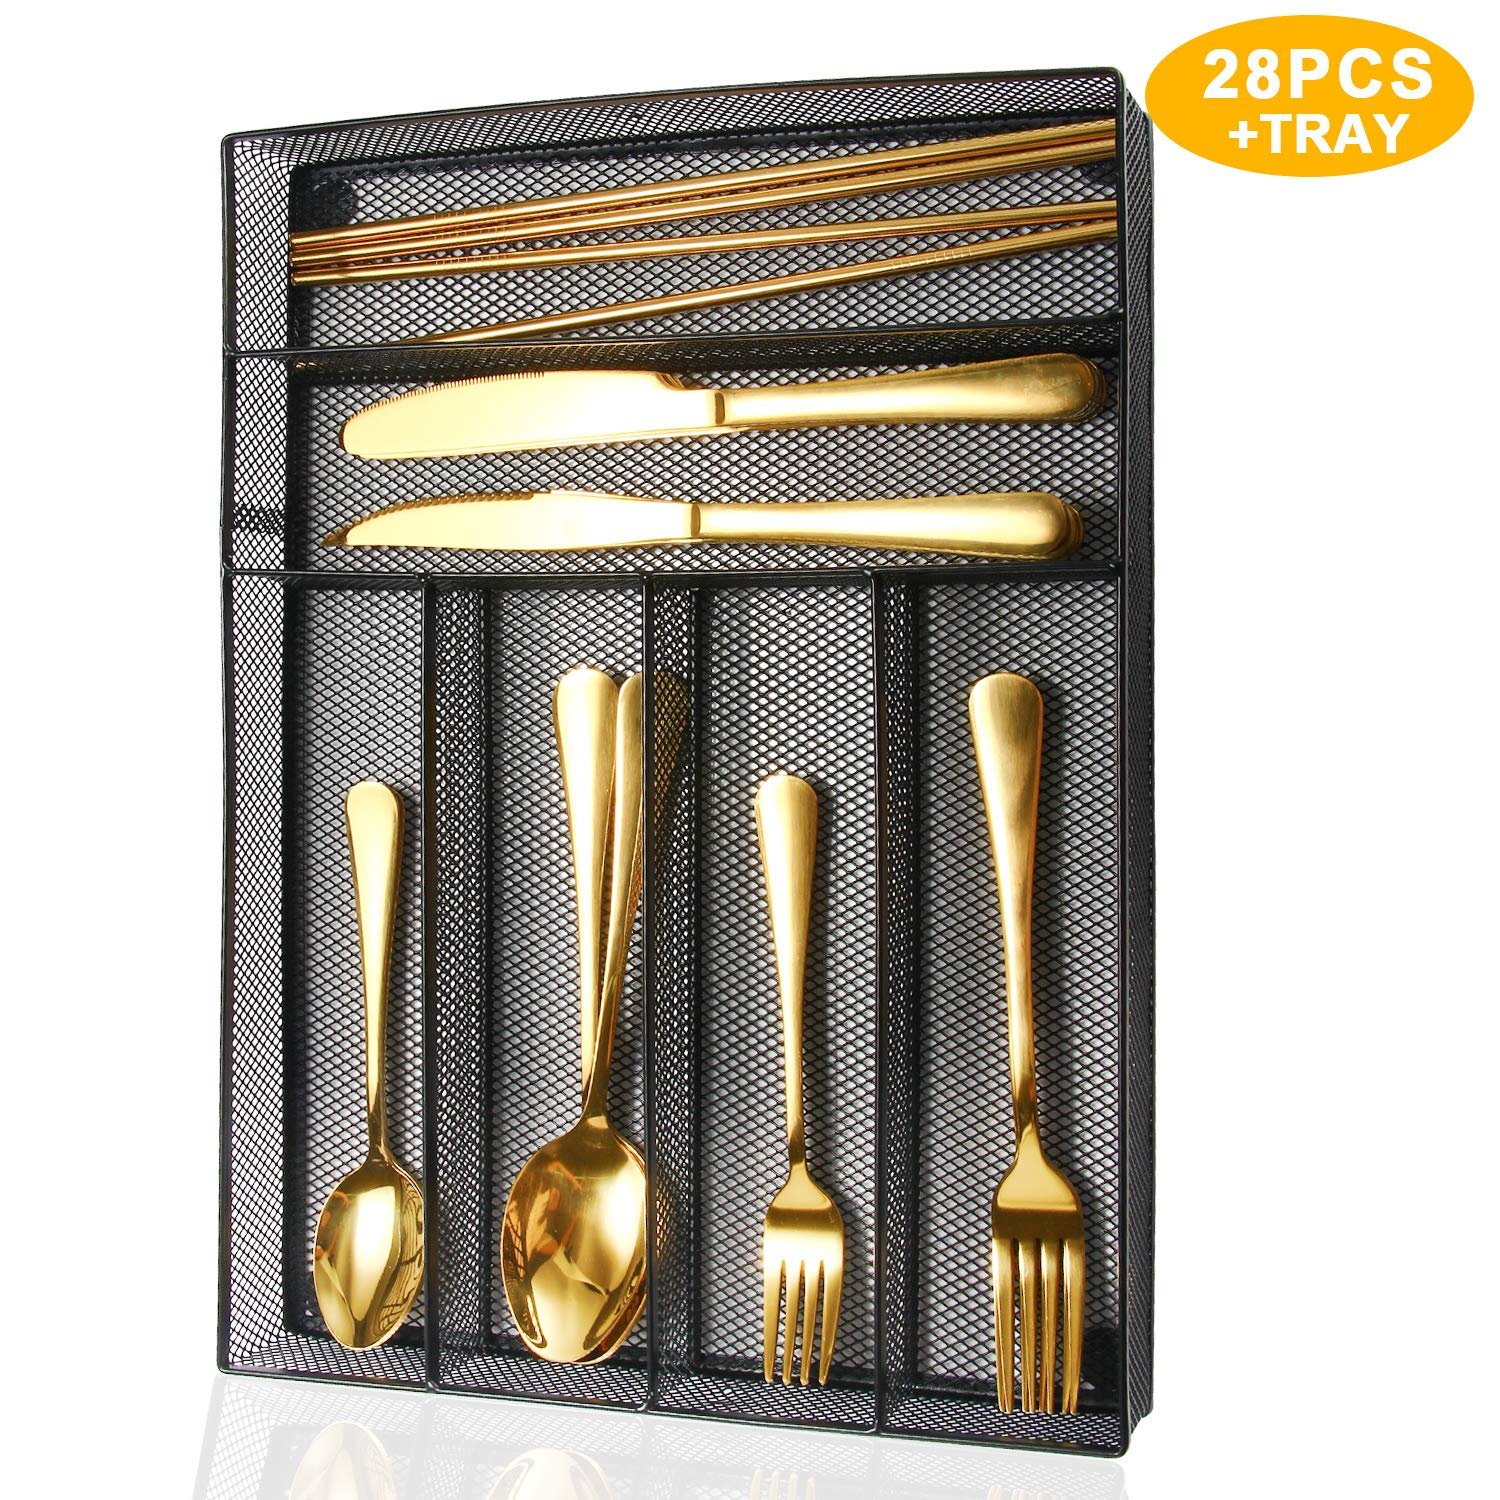 WOAIWO-Q Silverware Set,28 PCS Stainless Steel Cutlery for 4 People,Flatware With Wire Mesh Holder Storage Trays Mirror Polish,Dishwasher Safe,Include Knife/Fork/Spoon/Straw (Gold)